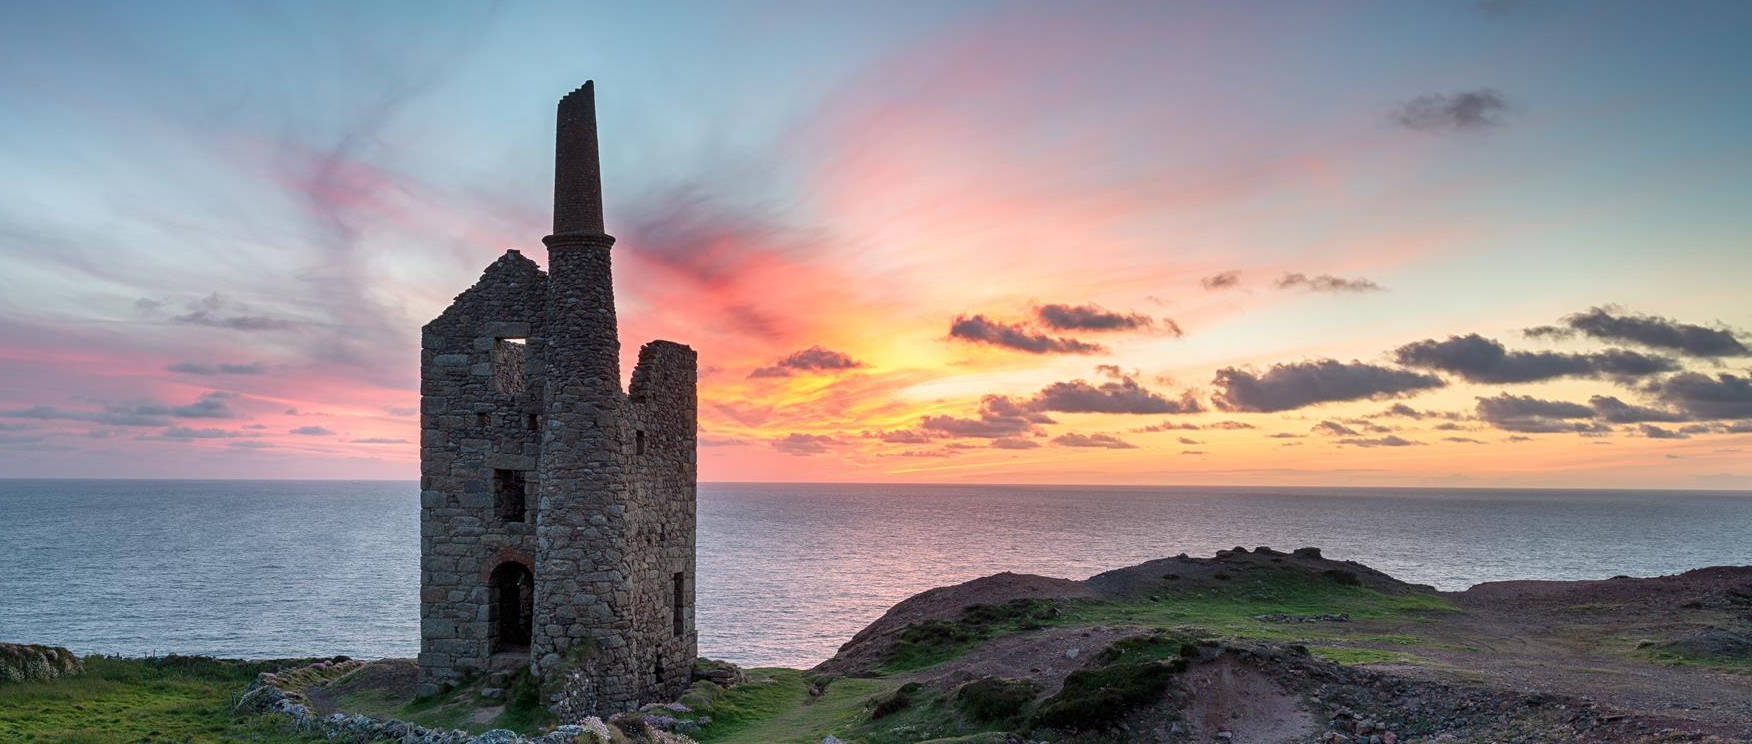 Wheal Owles Mine at Botallack St just